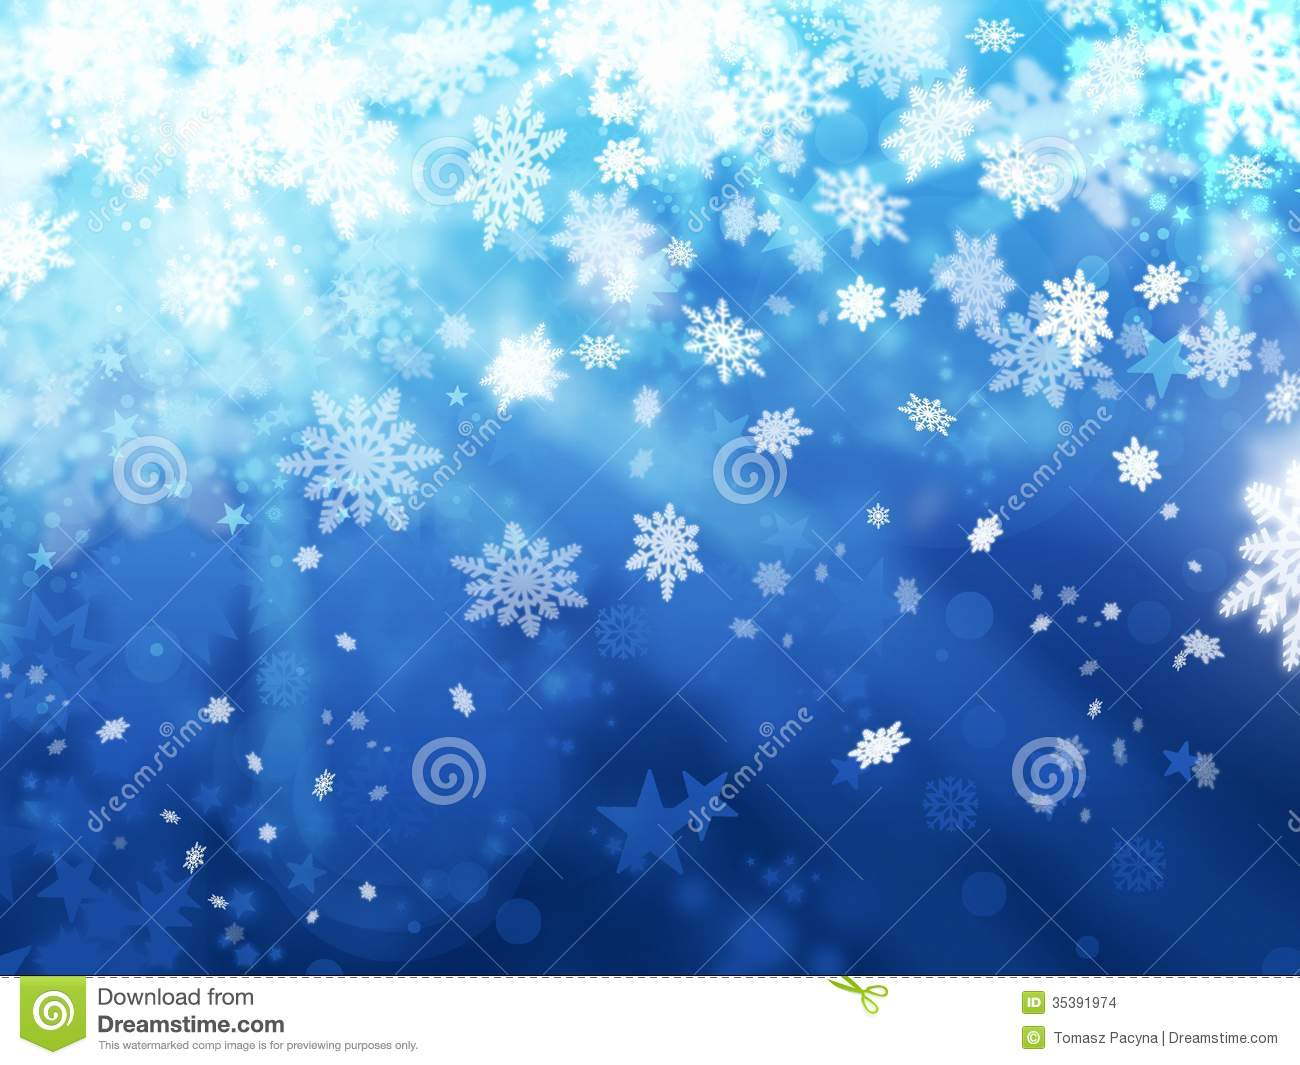 Free Animated Falling Snow Wallpaper Xmas Snoflakes Abstract Winter Background Stock